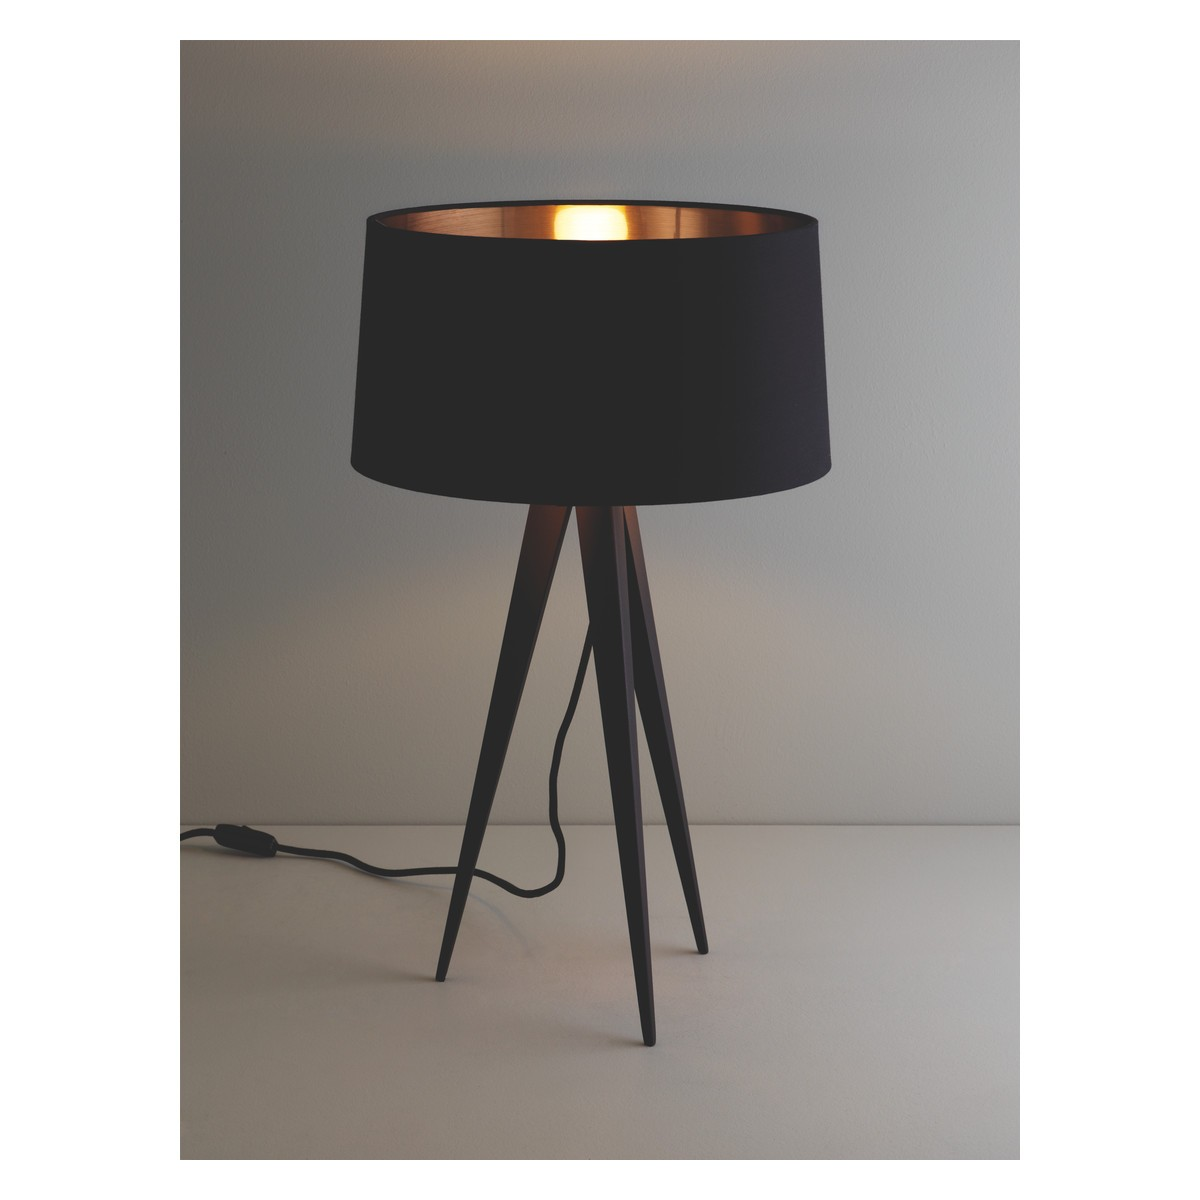 Pictures of ... YVES Black metal tripod table lamp base ... tripod table lamp